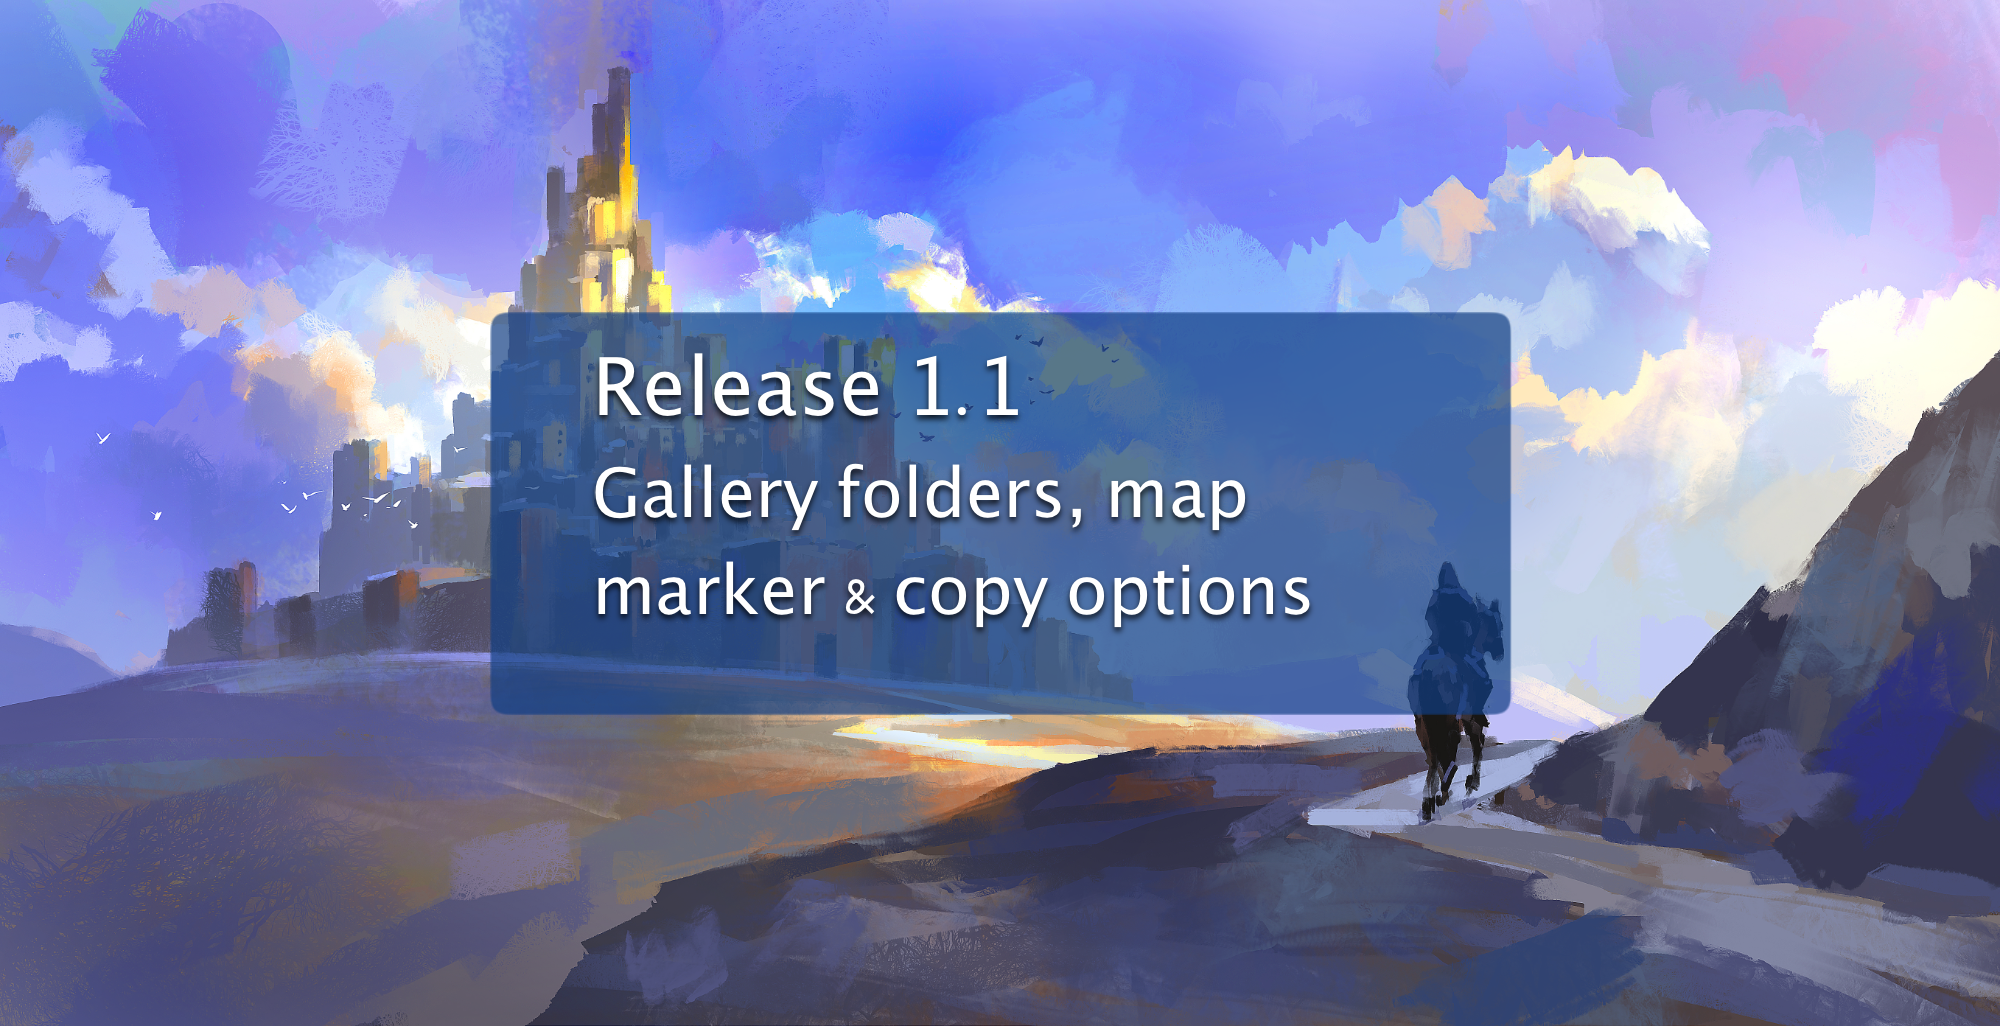 release 1.1